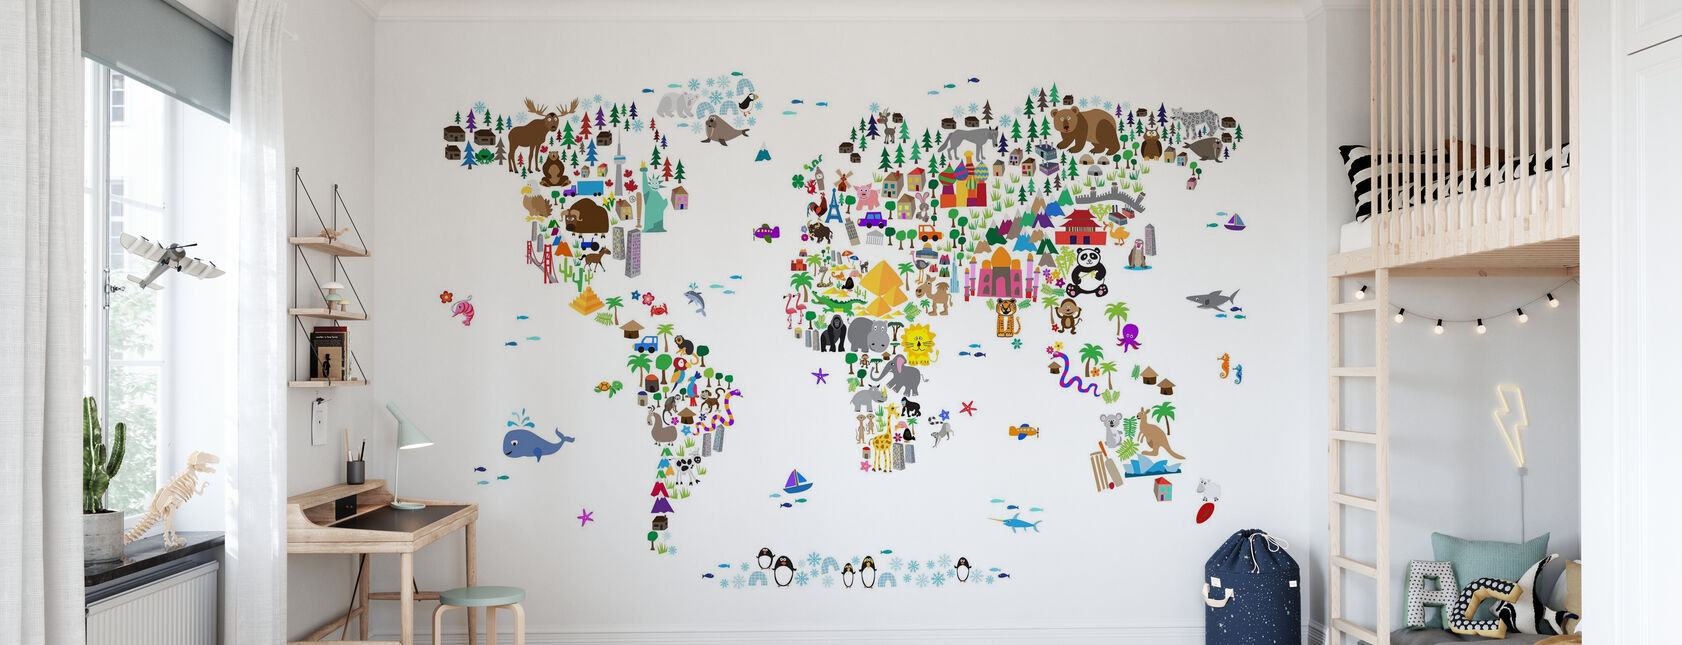 Animal Map of the World - Wallpaper - Kids Room